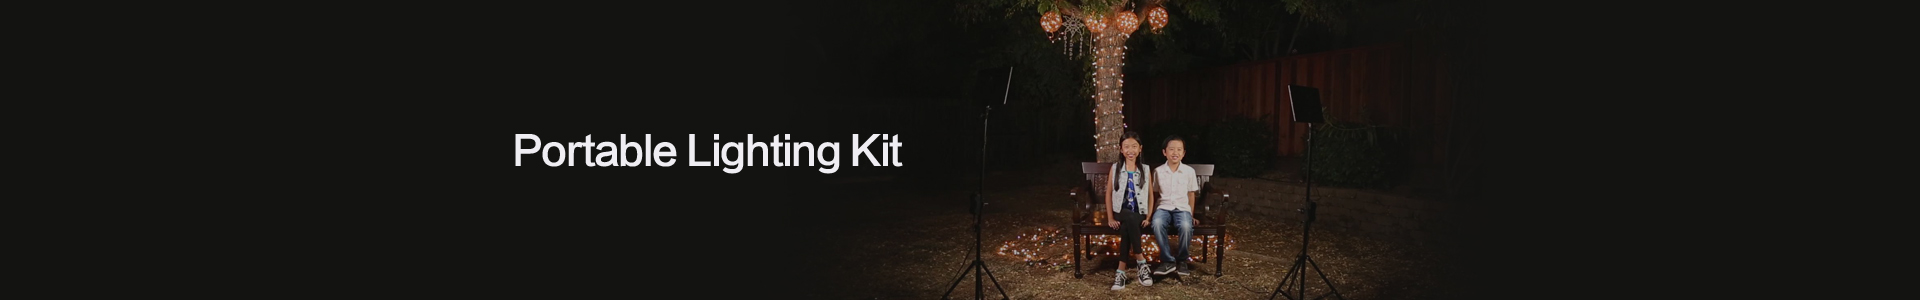 Portable Lighting Kit